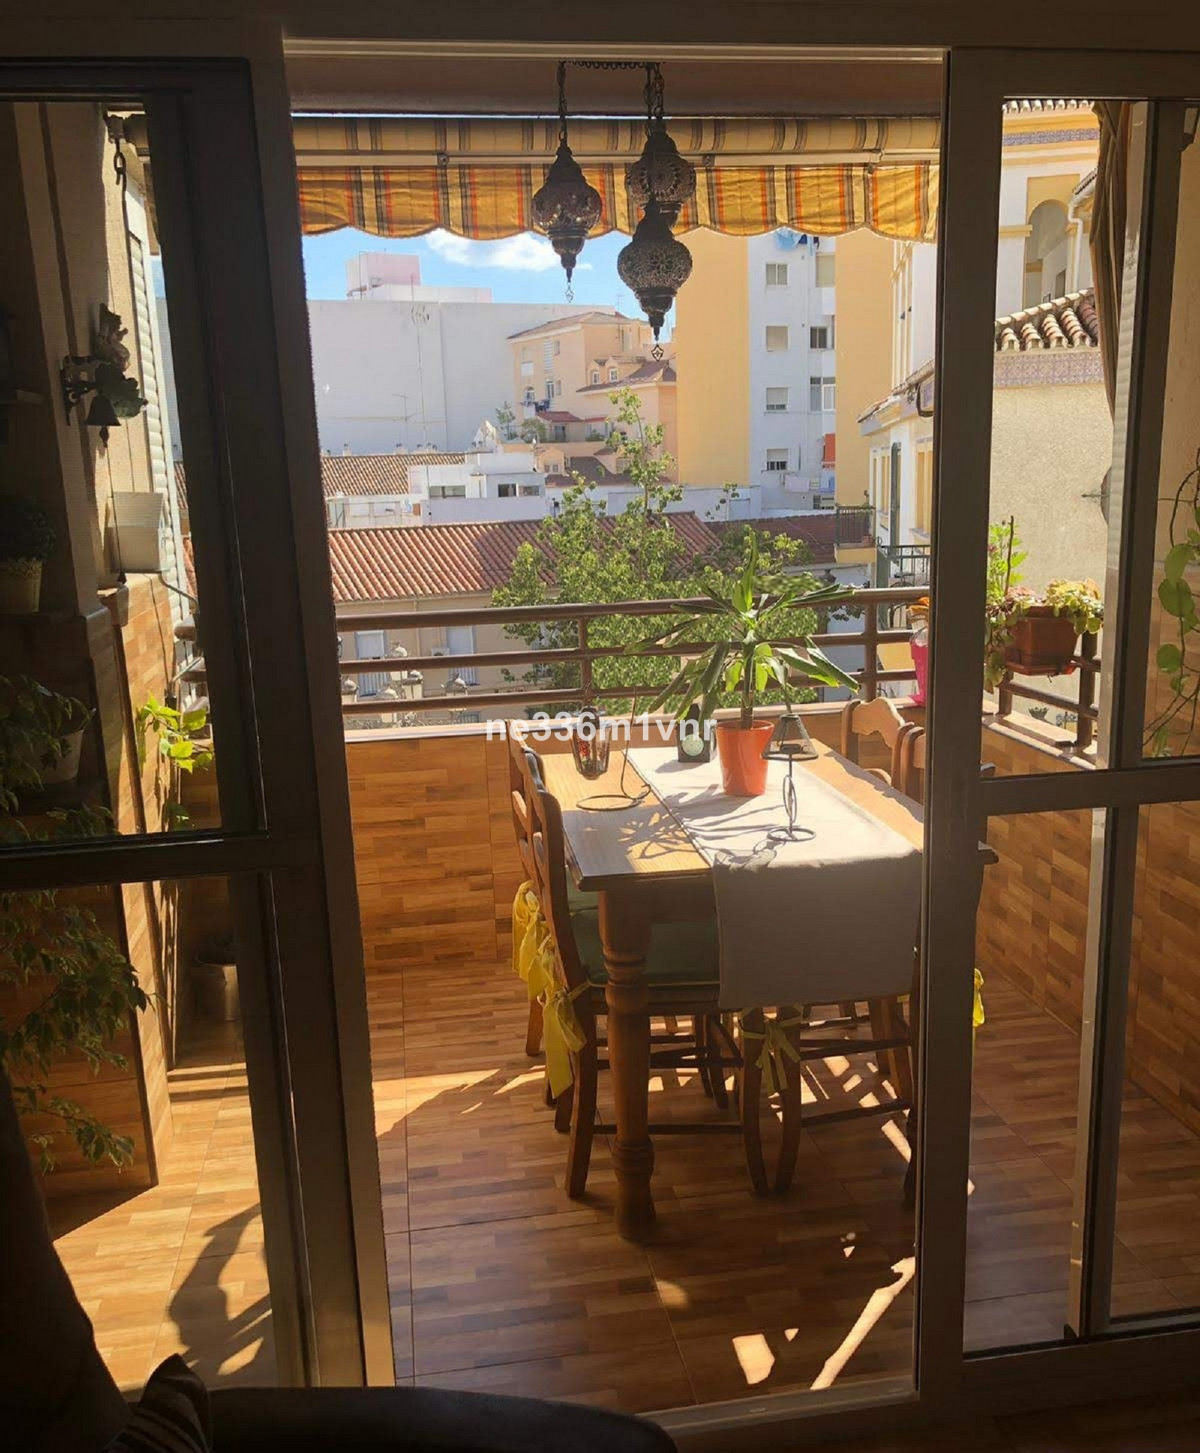 EXCELLENT REFURBISHED FLAT WITH TERRACE AND 10 MINUTES FROM THE HISTORICAL CENTRE!  The property con,Spain